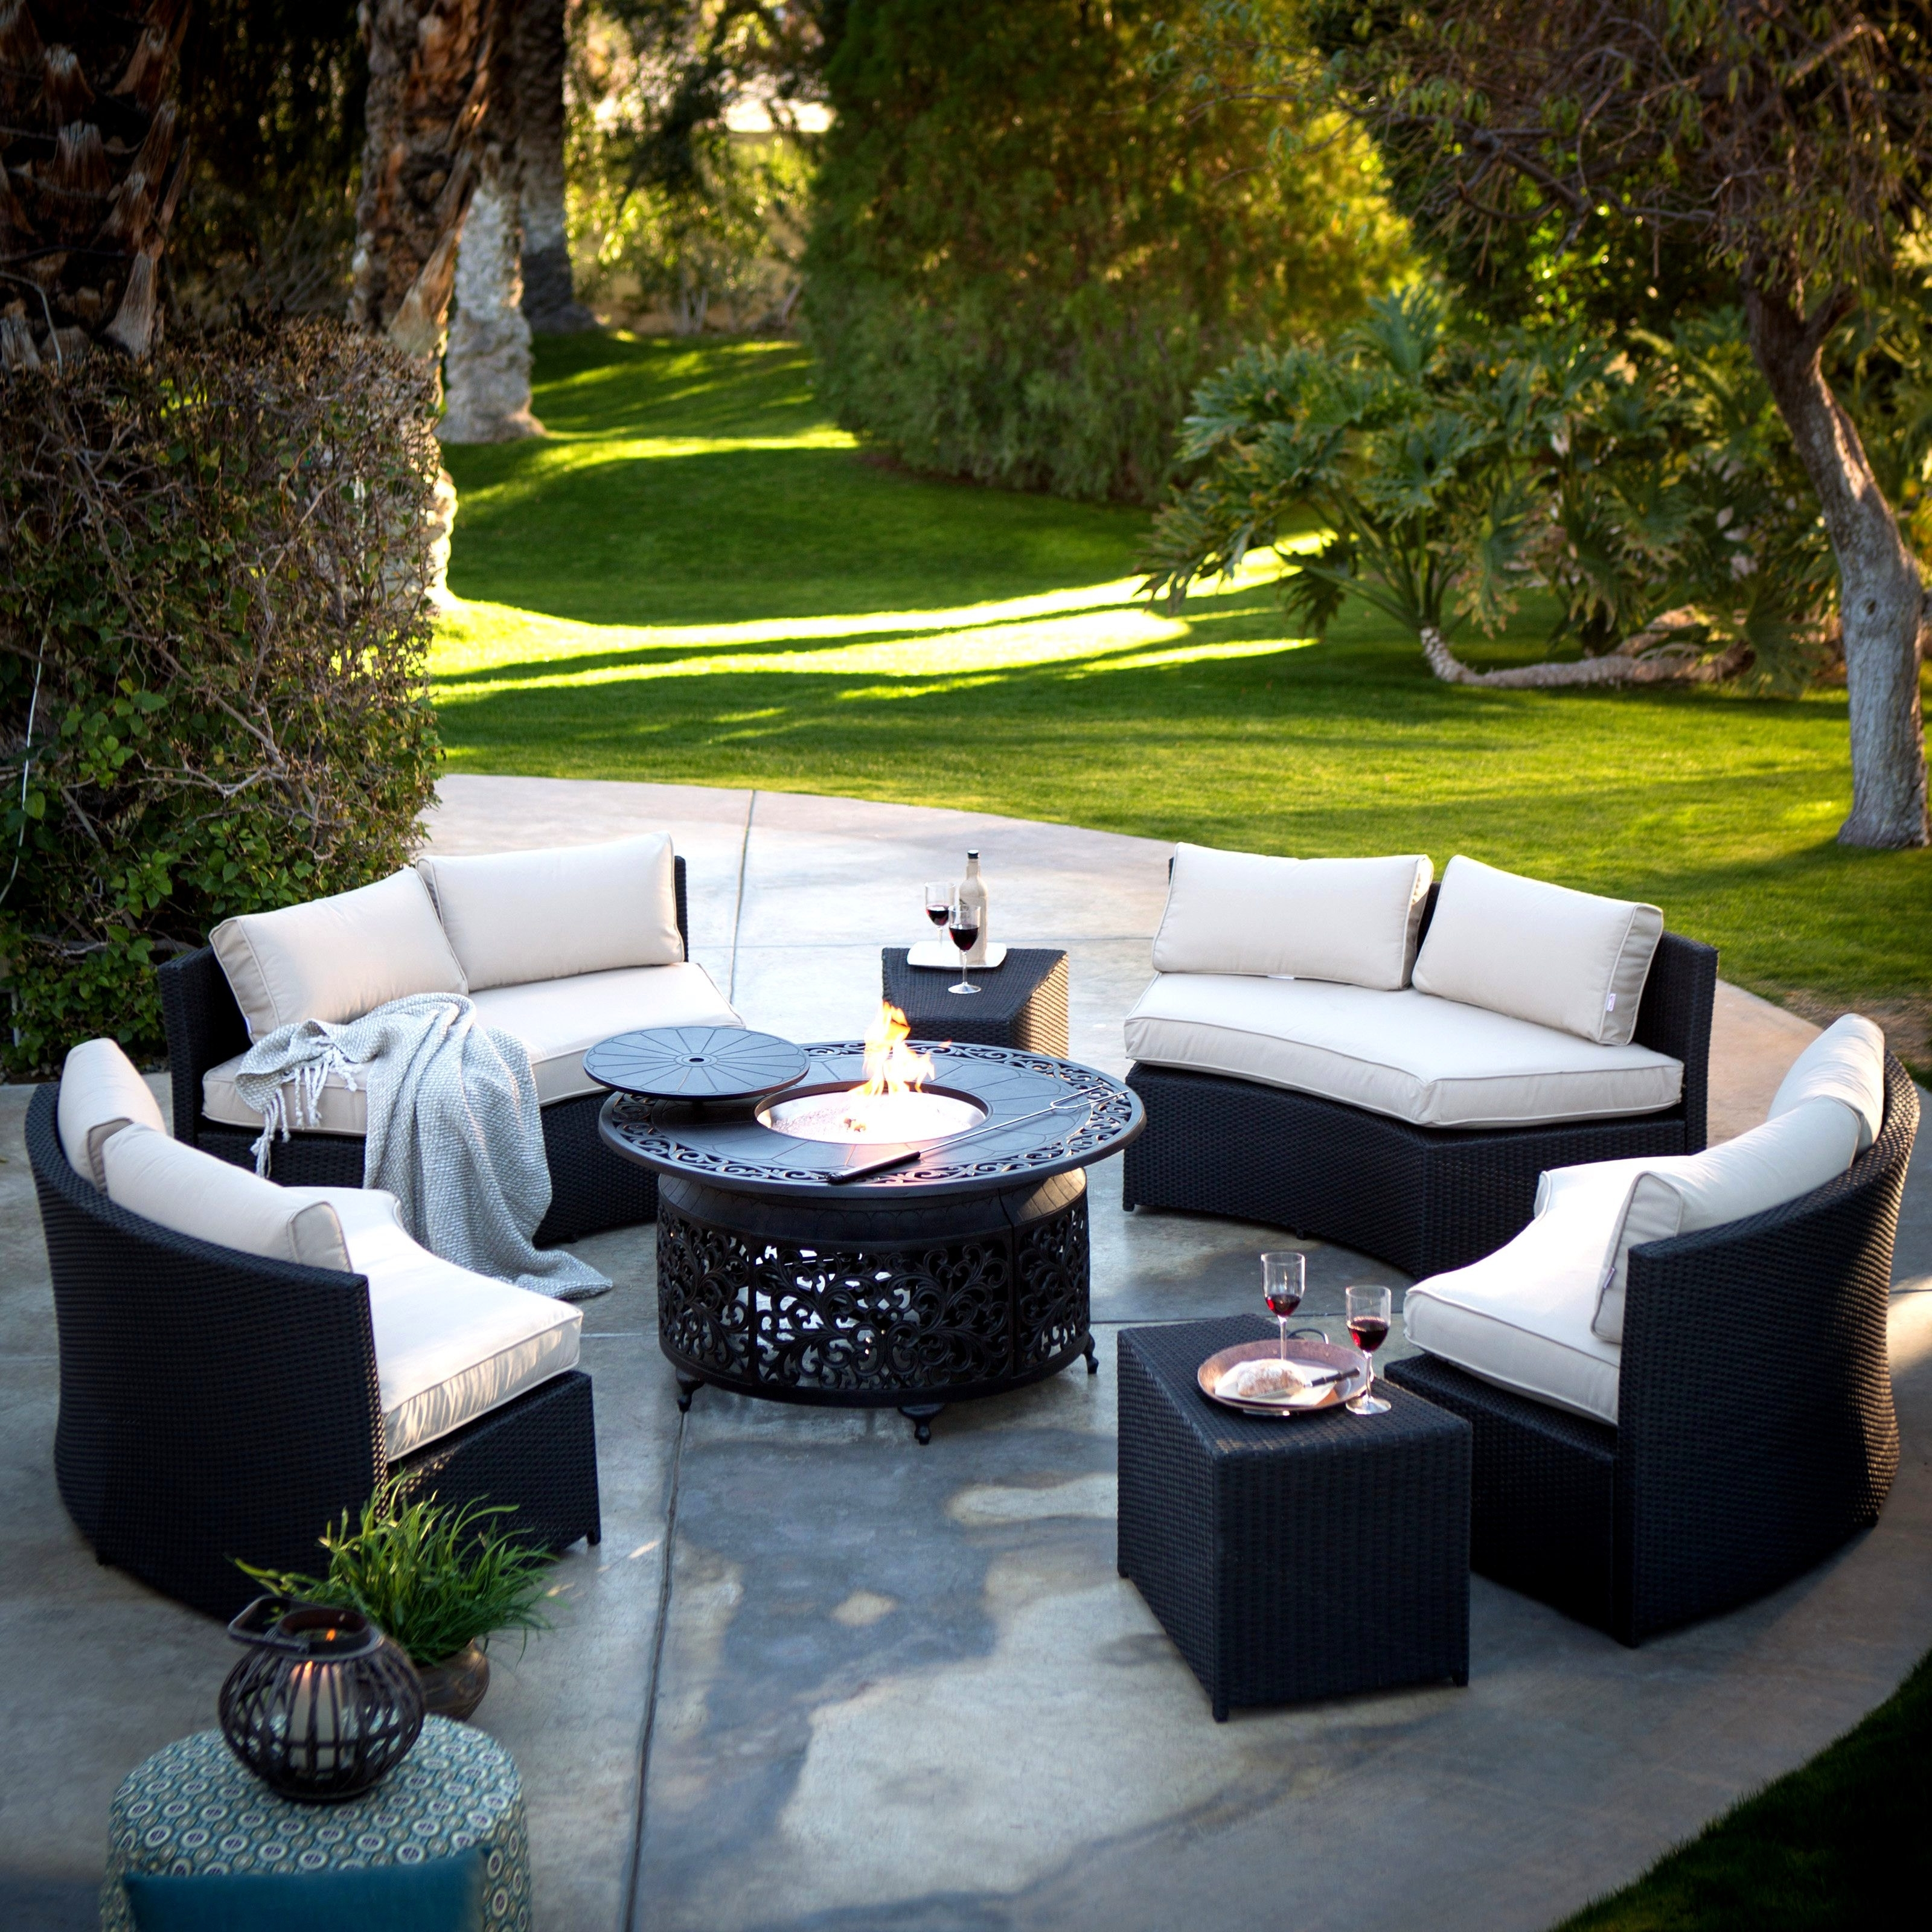 Preferred Outdoor Patio Furniture Conversation Sets With Regard To 30 Luxury Patio Conversation Sets Clearance Scheme – Onionskeen (View 17 of 20)